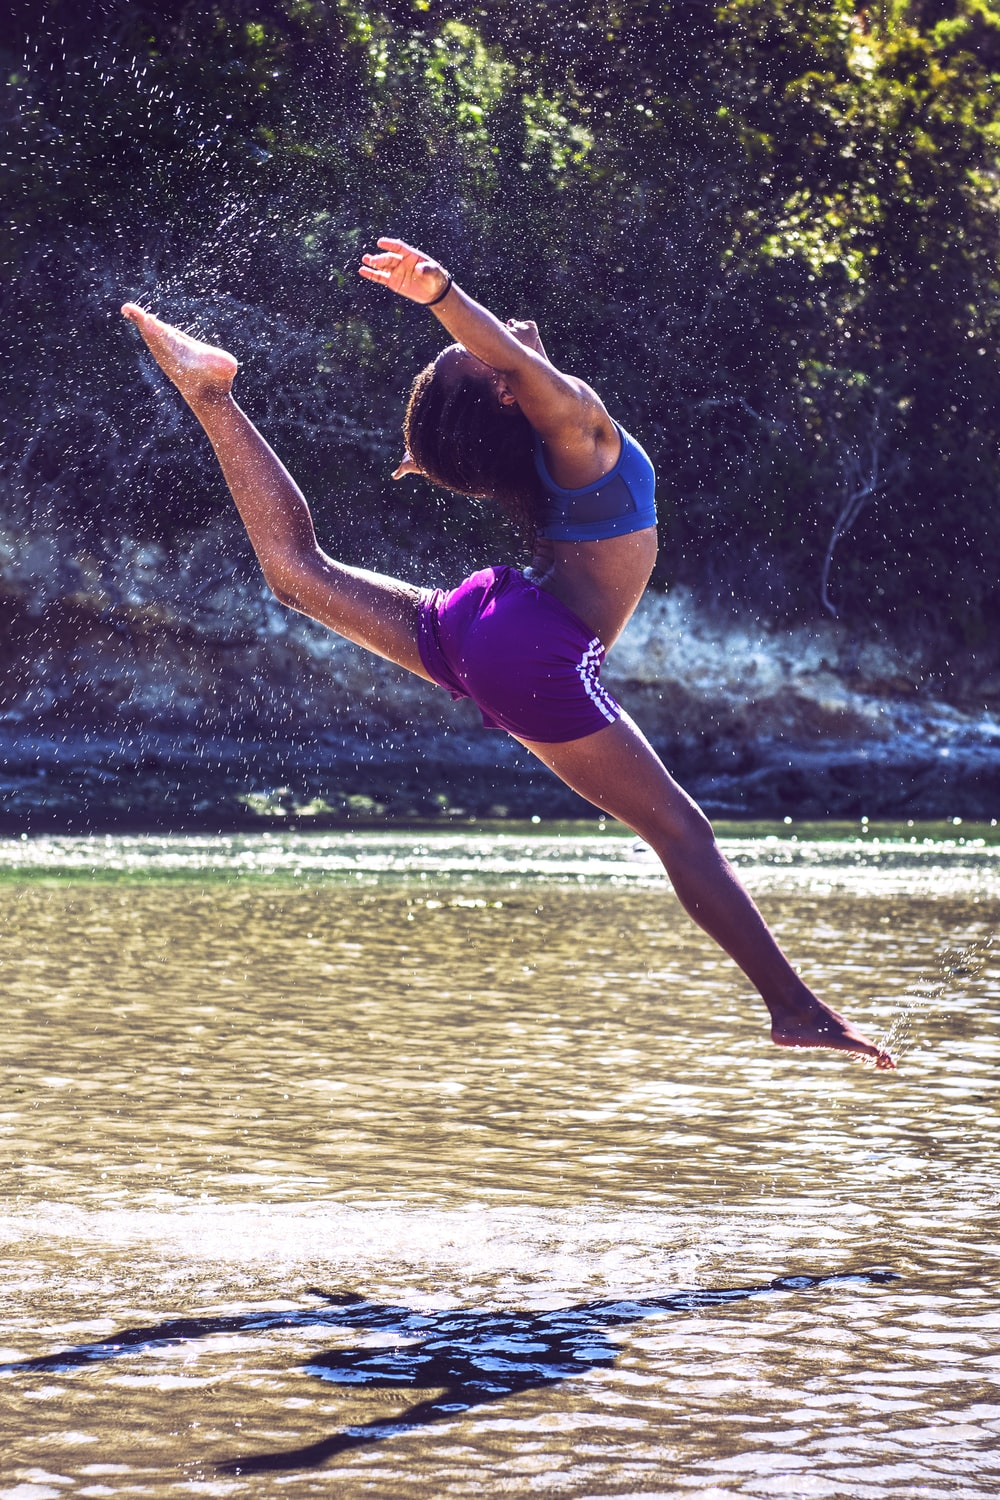 woman bending on body of water